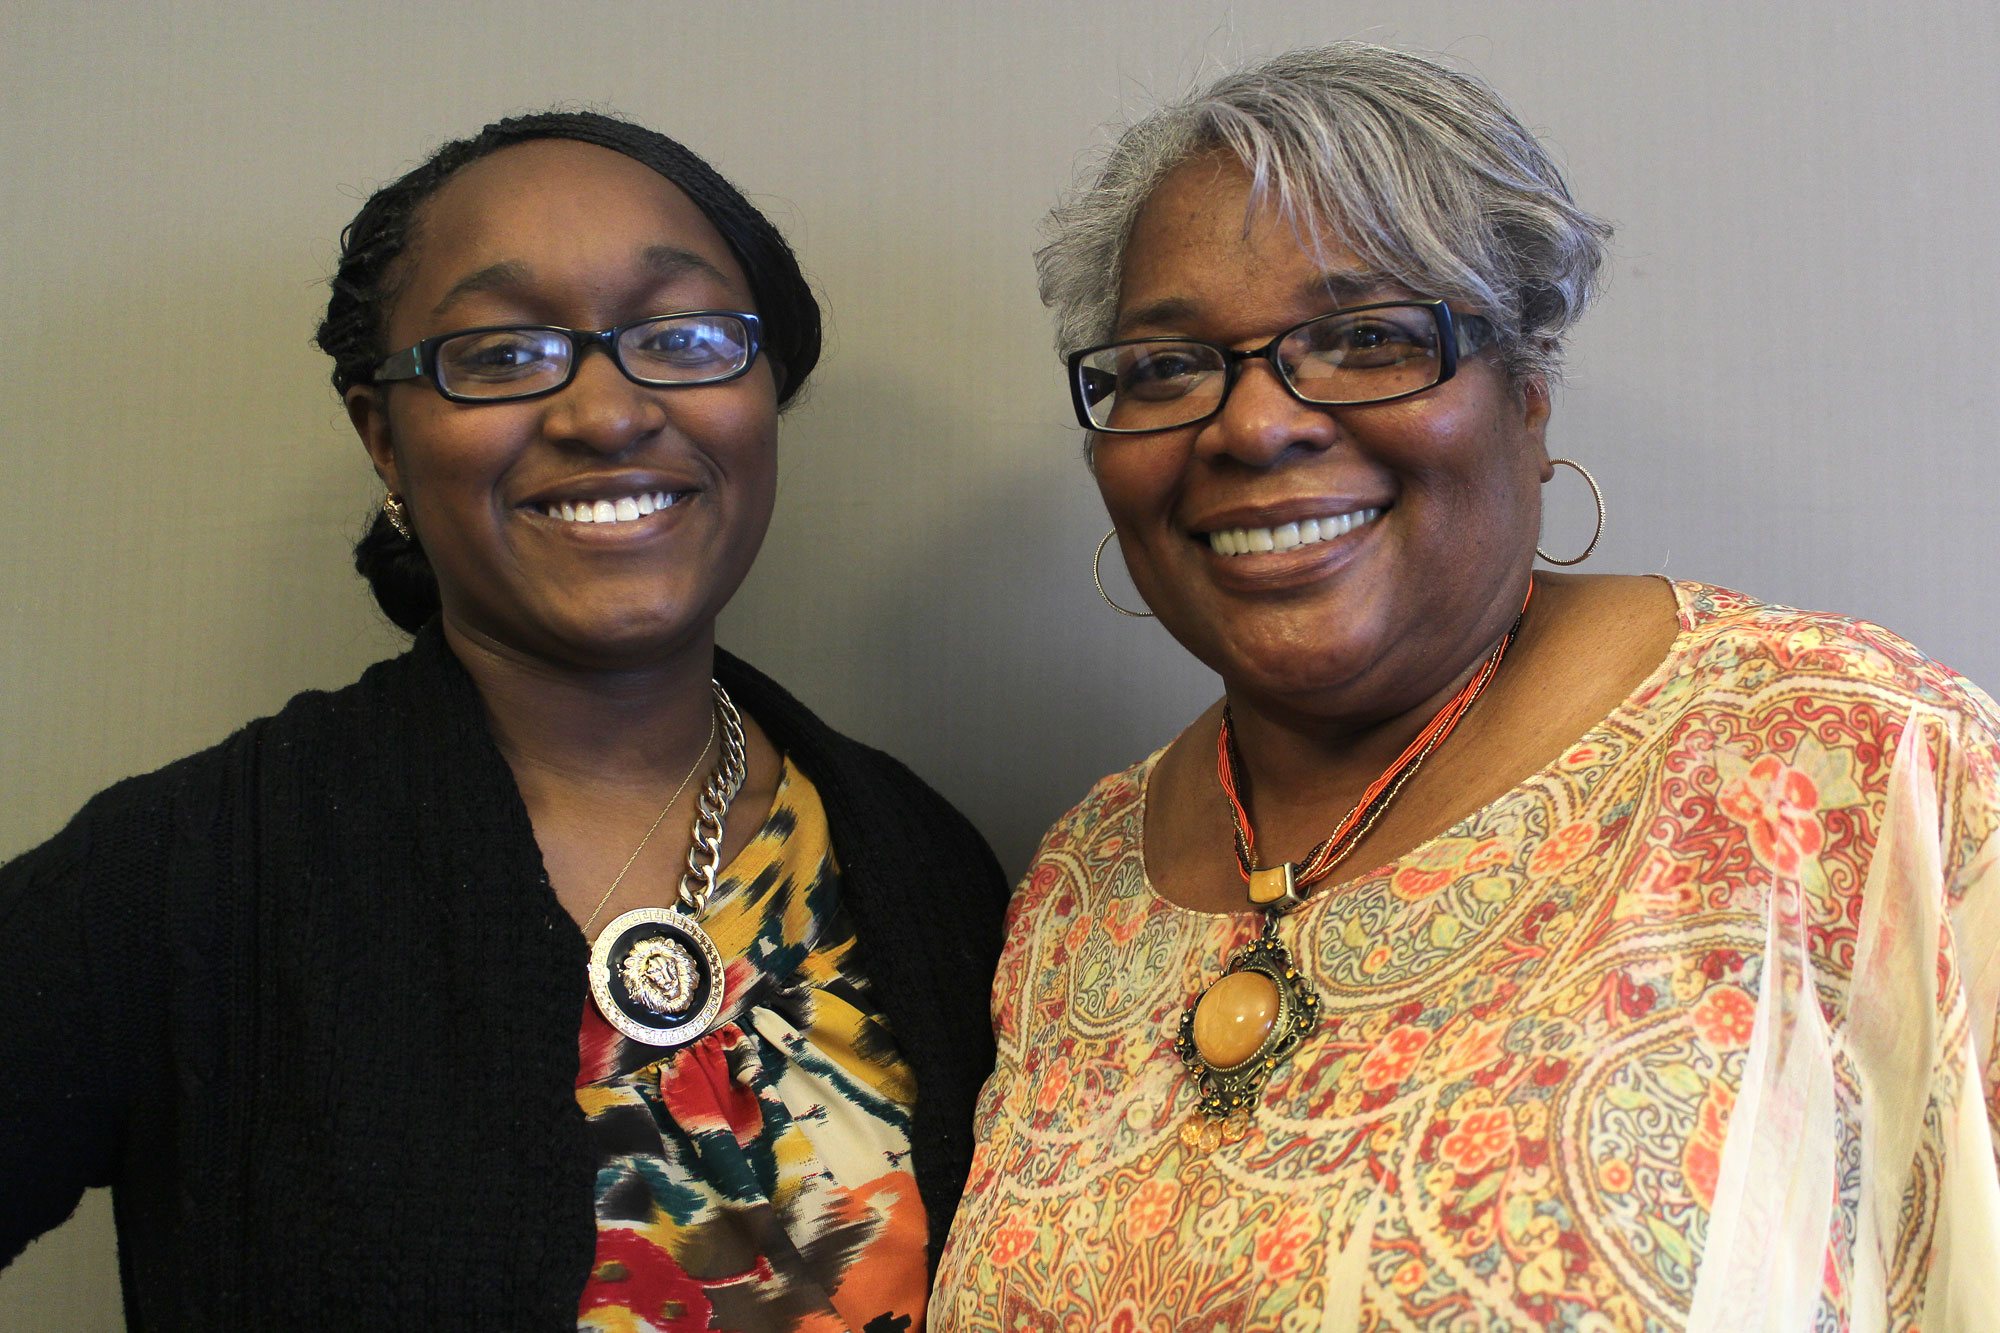 In their StoryCorps session, DaJaia James interviews her grandmother, Dr. Beryl New, and hears about the 1970 Topeka High School walkout and the challenges New faced pursuing her college education.